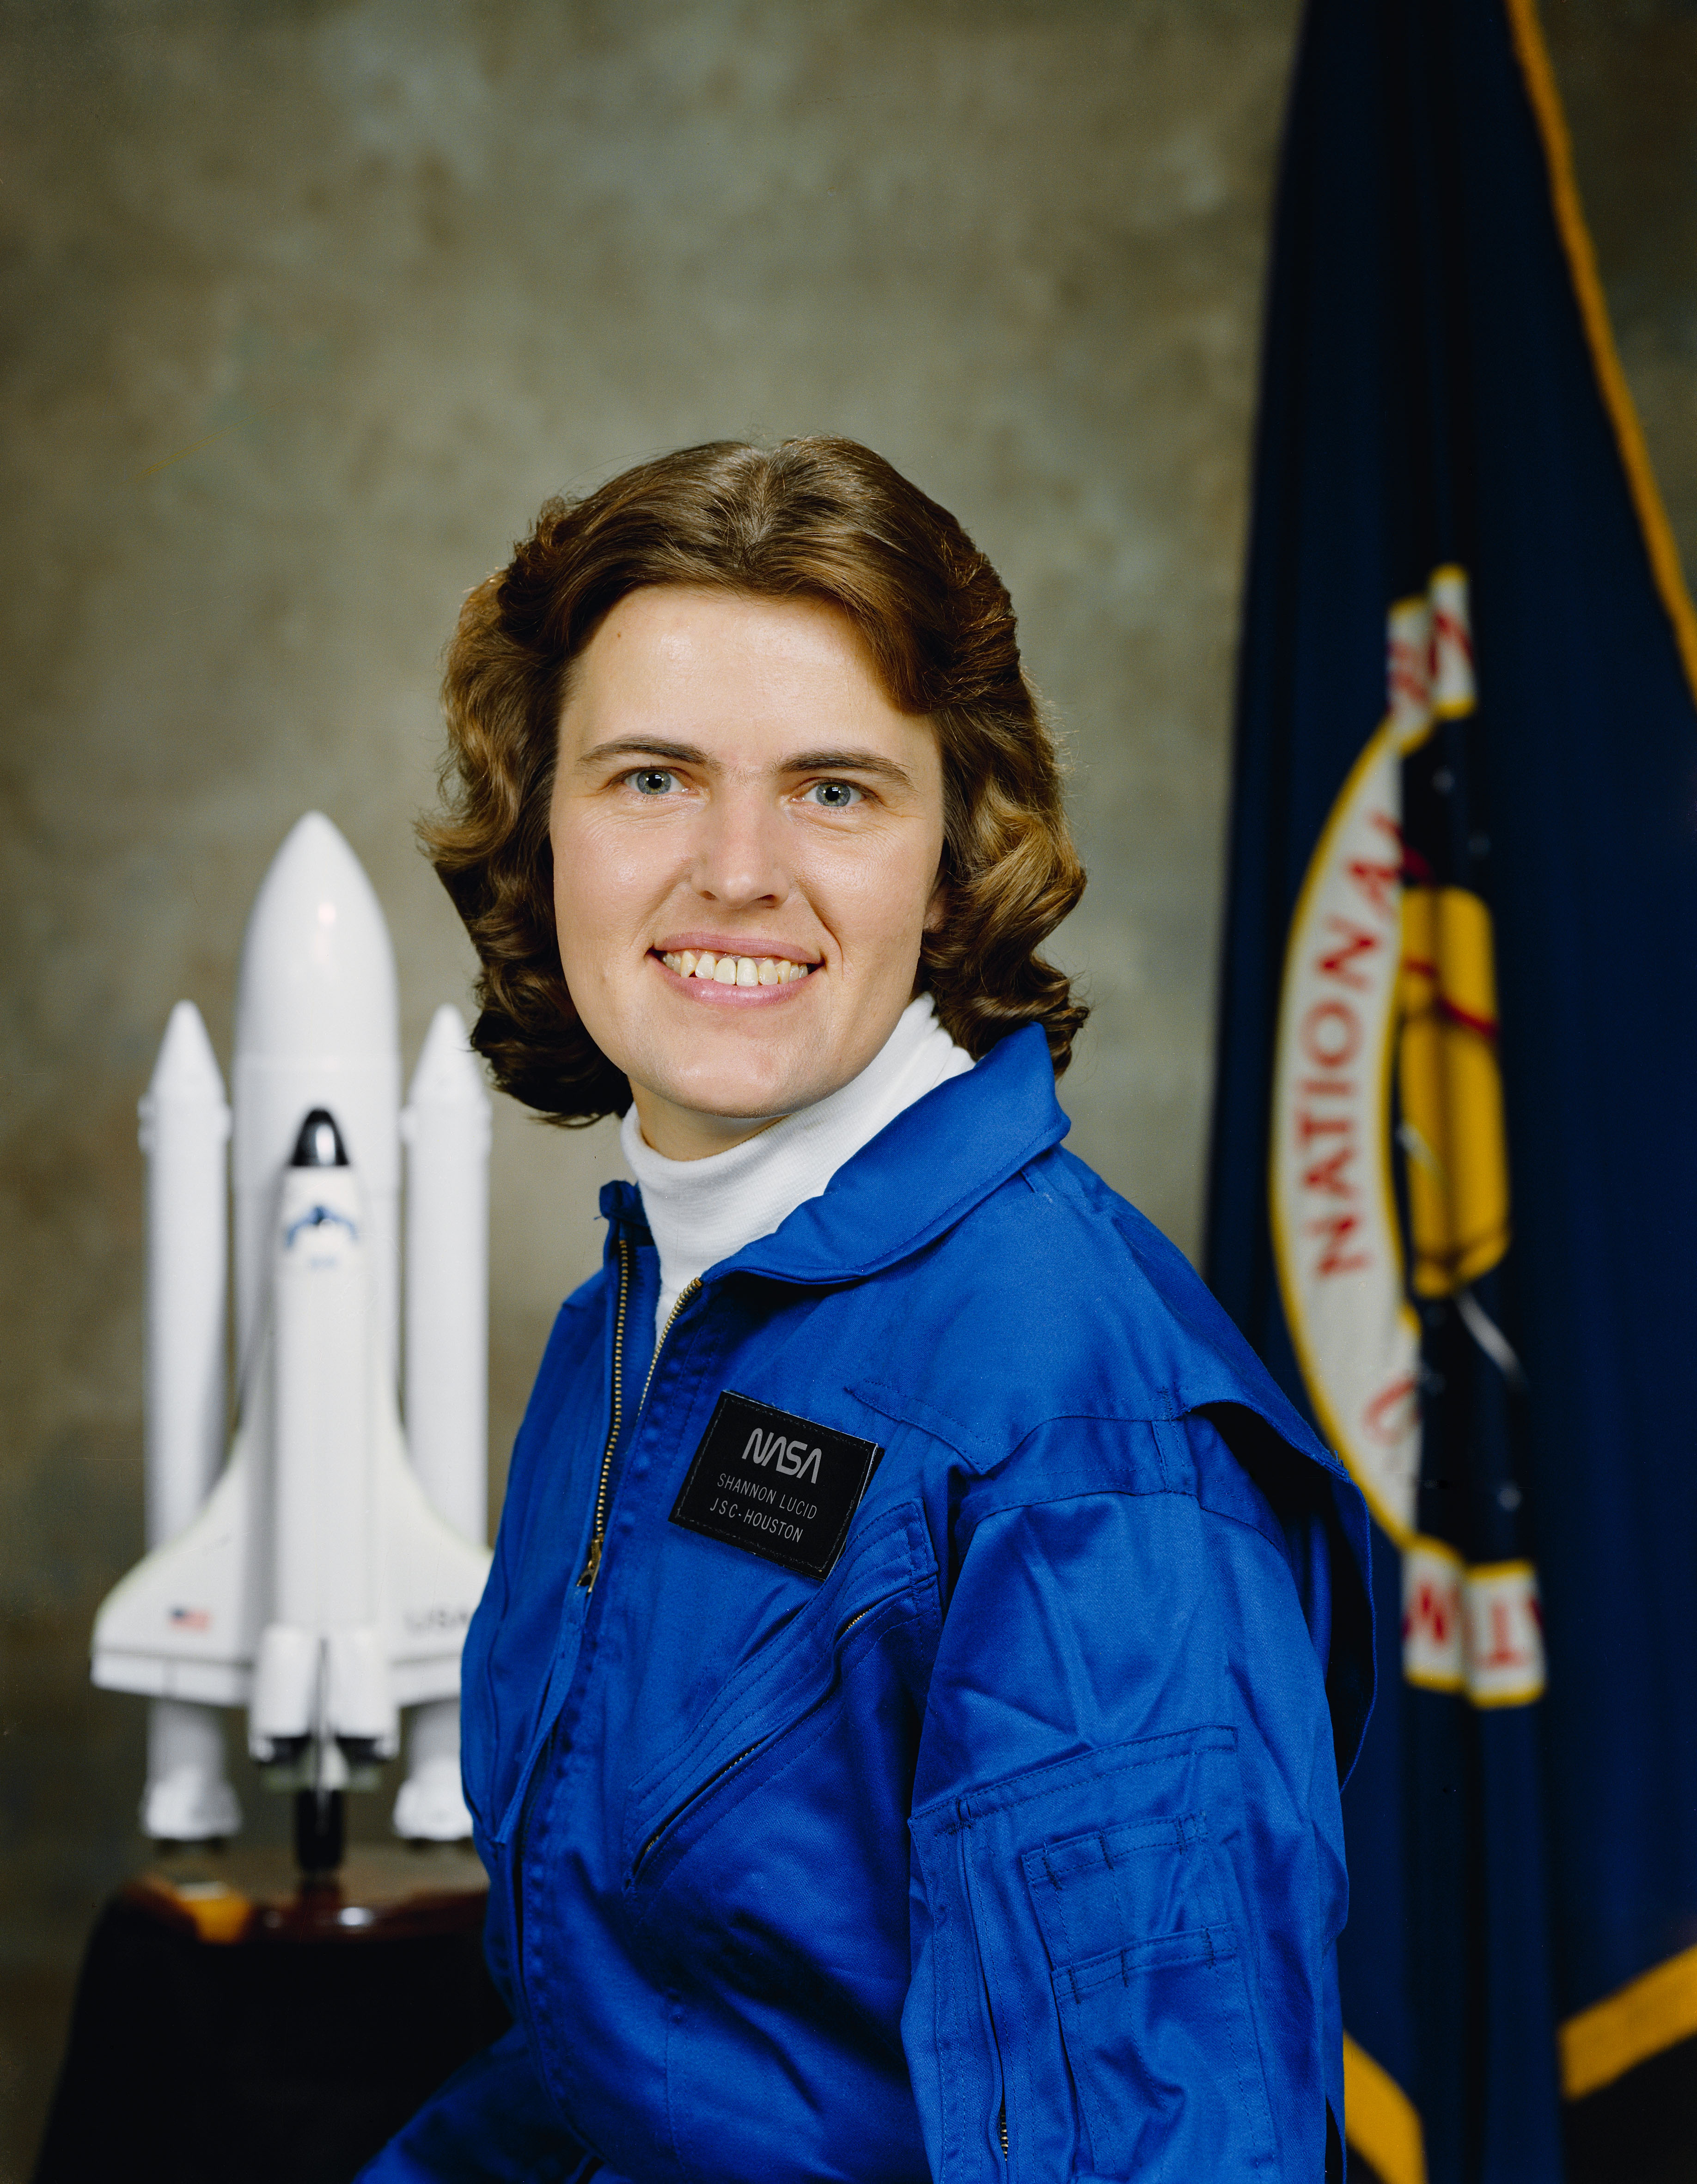 life of american biochemist shannon lucid and her contributions to nasa Shannon lucid ~ an american biochemist and a retired nasa astronaut at one time, she held the record for the longest duration stay in space by an american, as well as by a woman.